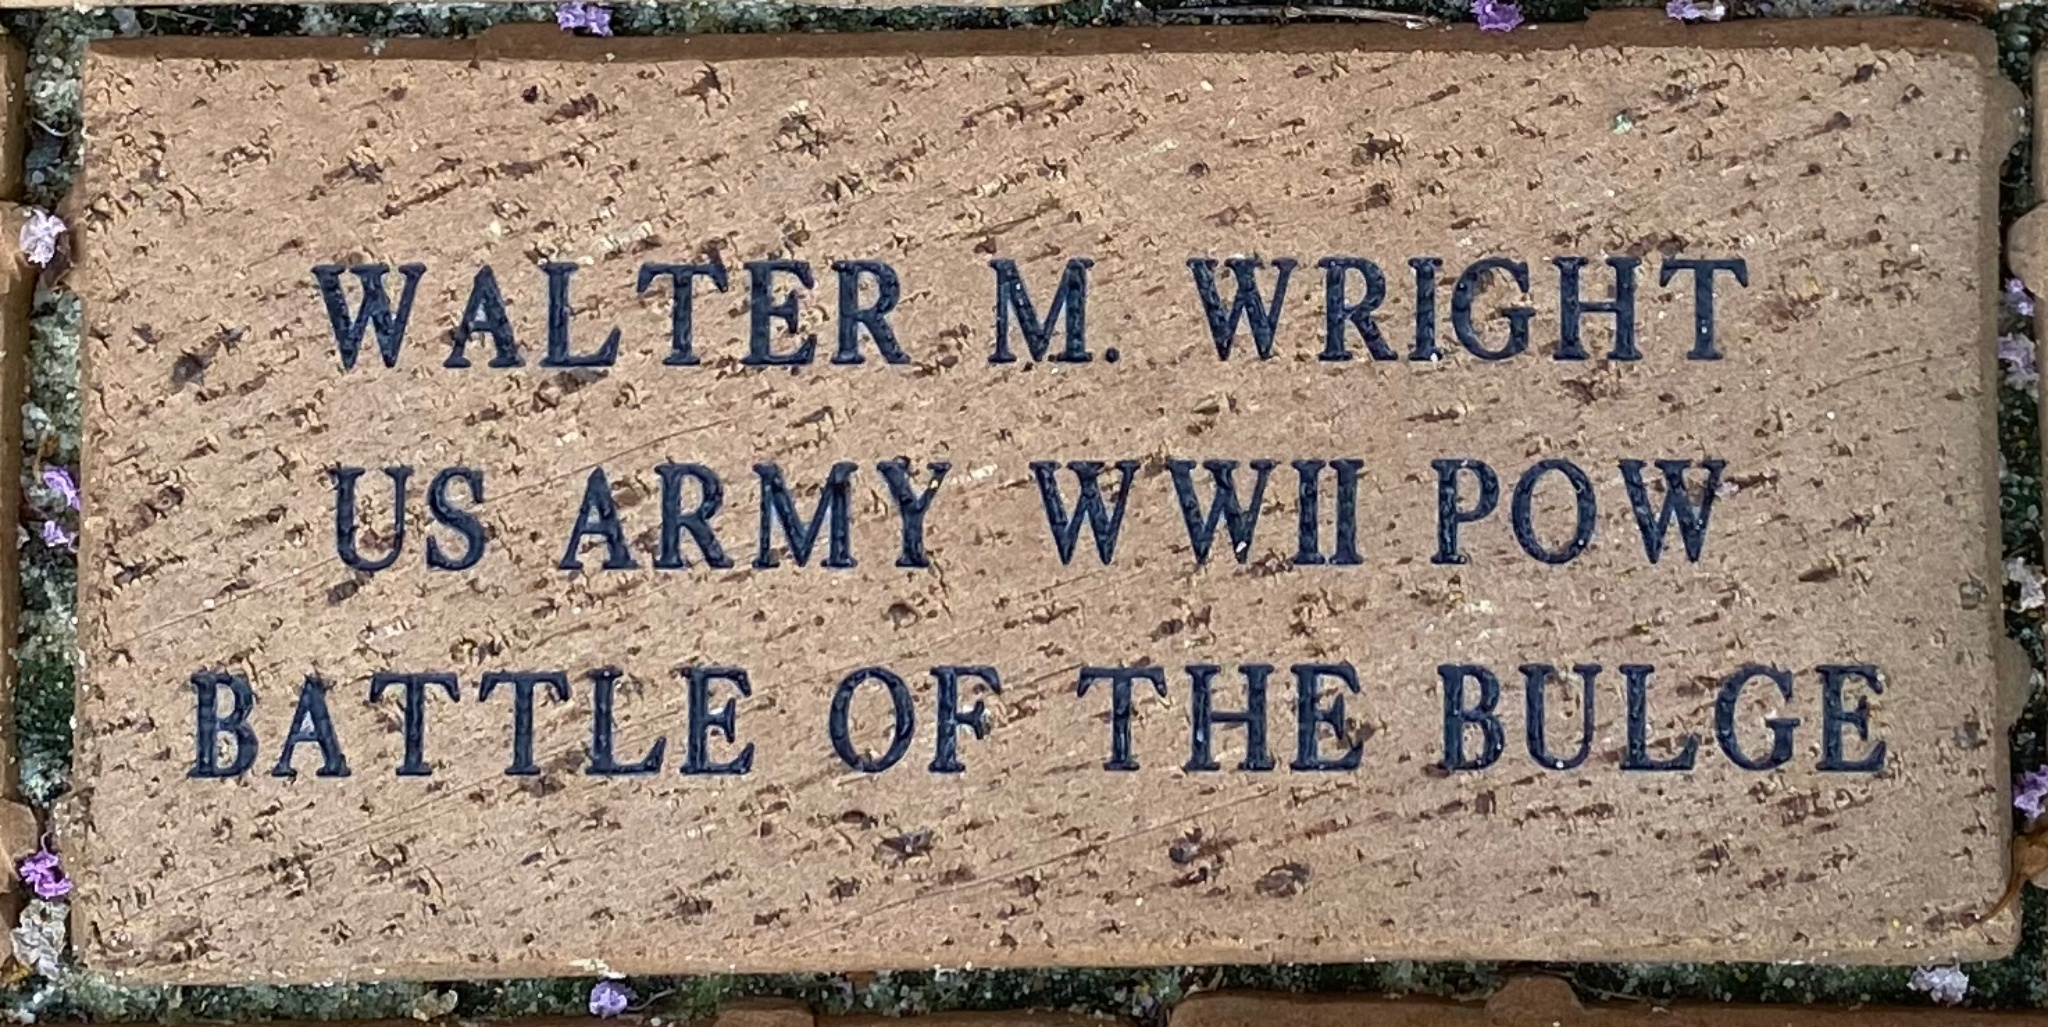 WALTER M. WRIGHT US ARMY WWII POW BATTLE OF THE BULGE